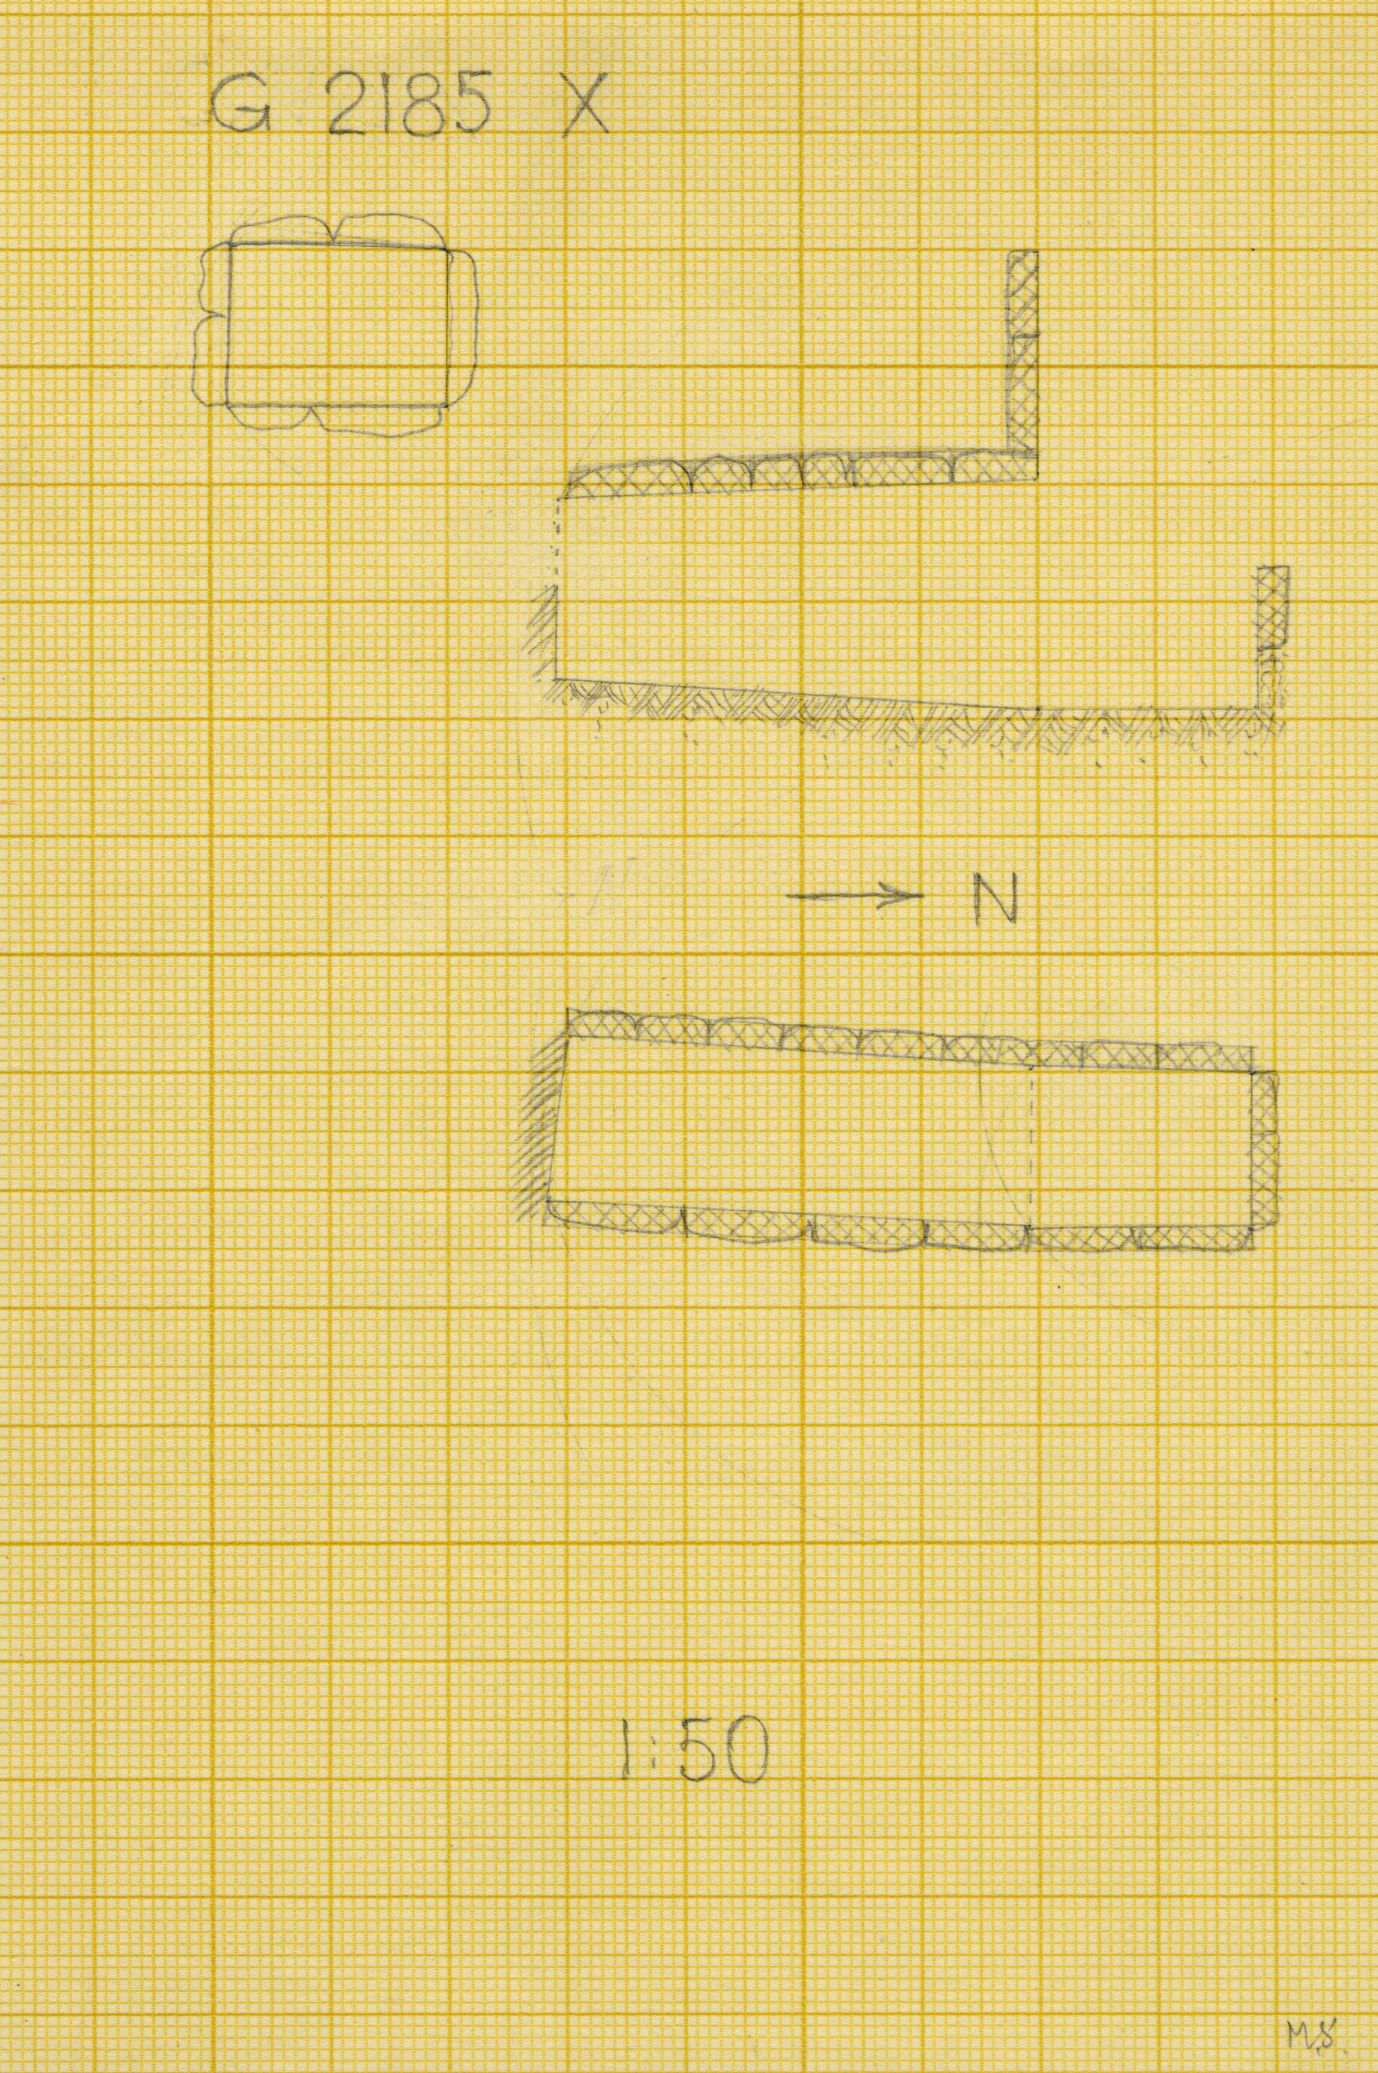 Maps and plans: G 2185, Shaft X